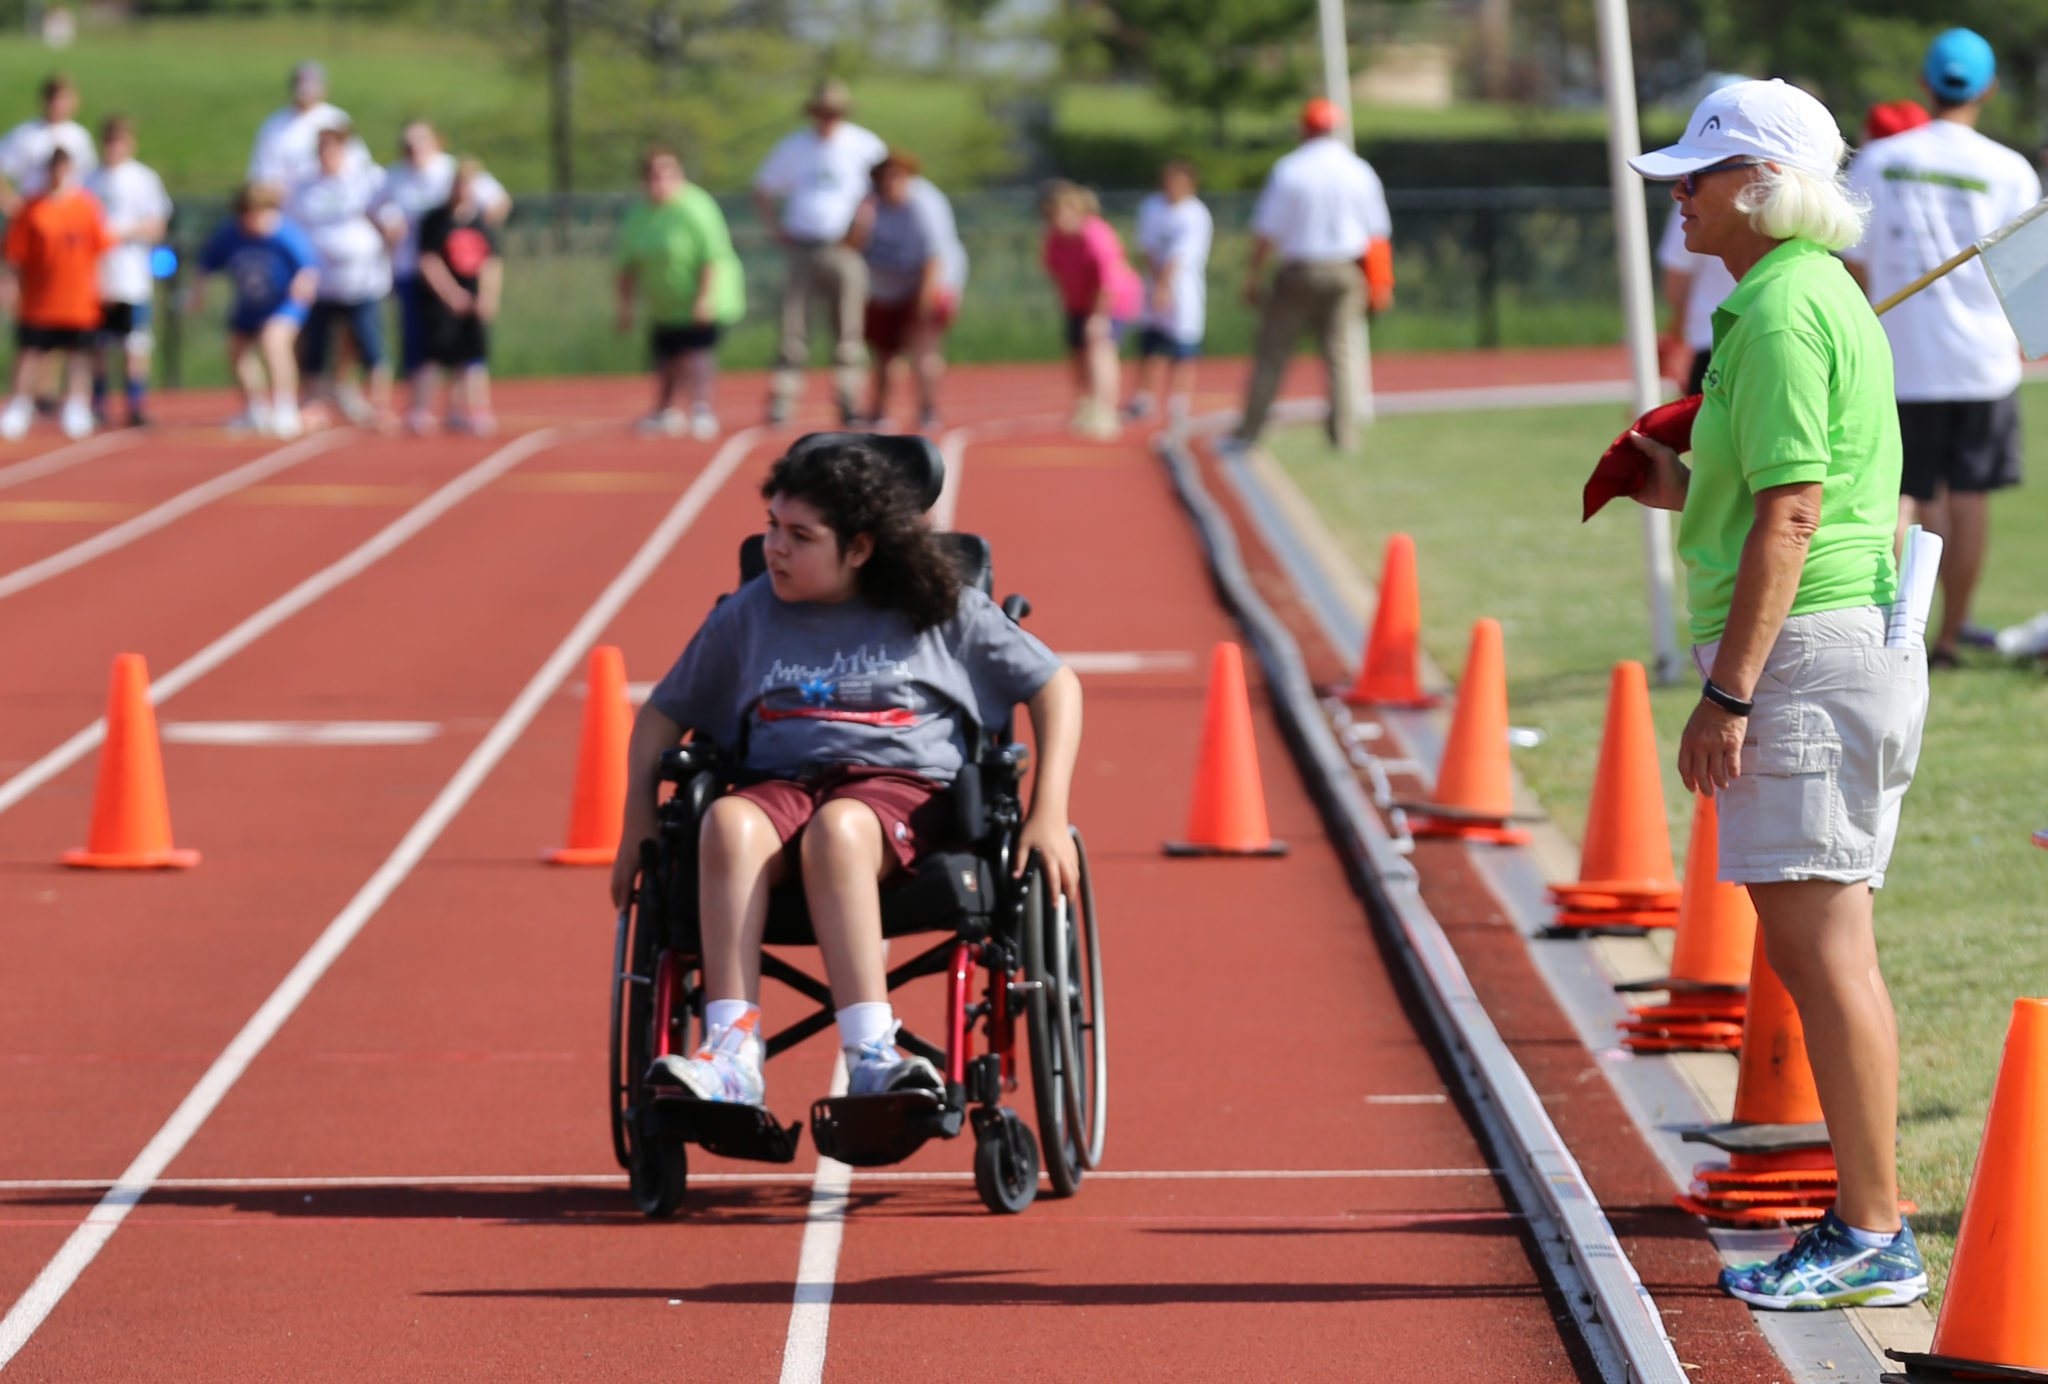 wheelchair olympics herman miller chair germany siblings experience summer games for first time special diana and daniel danny barraza of chicago participated in their illinois this year the sweltering heat did not stop